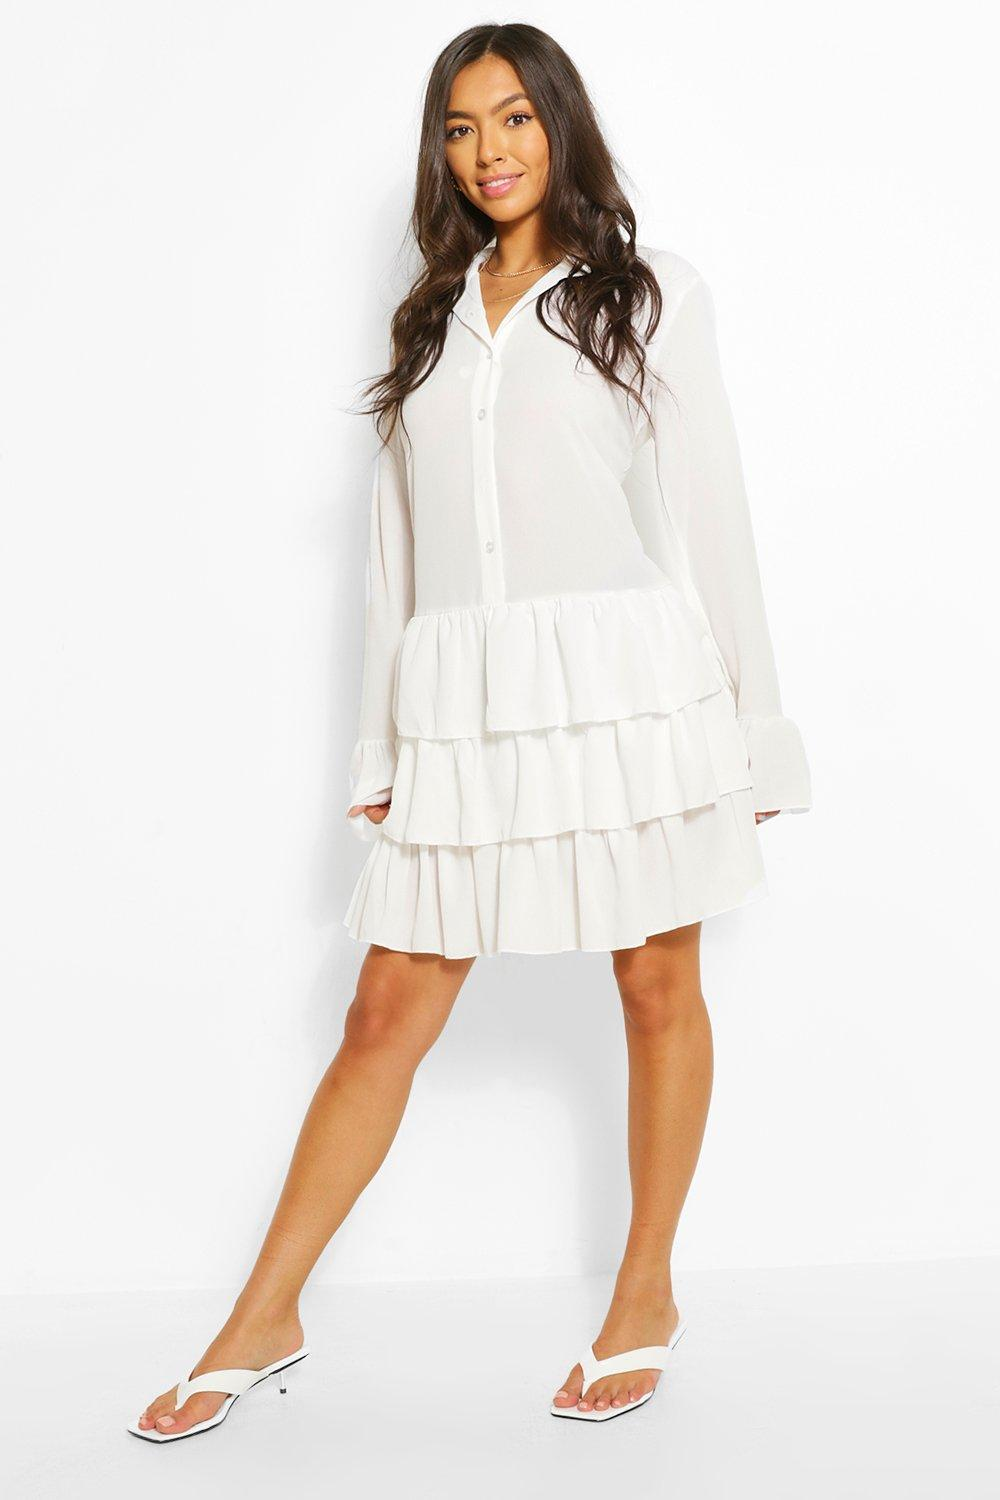 1920s Outfit Ideas: 10 Downton Abbey Inspired Costumes Womens Ruffle Hem Shirt Dress - White - 8 $16.00 AT vintagedancer.com